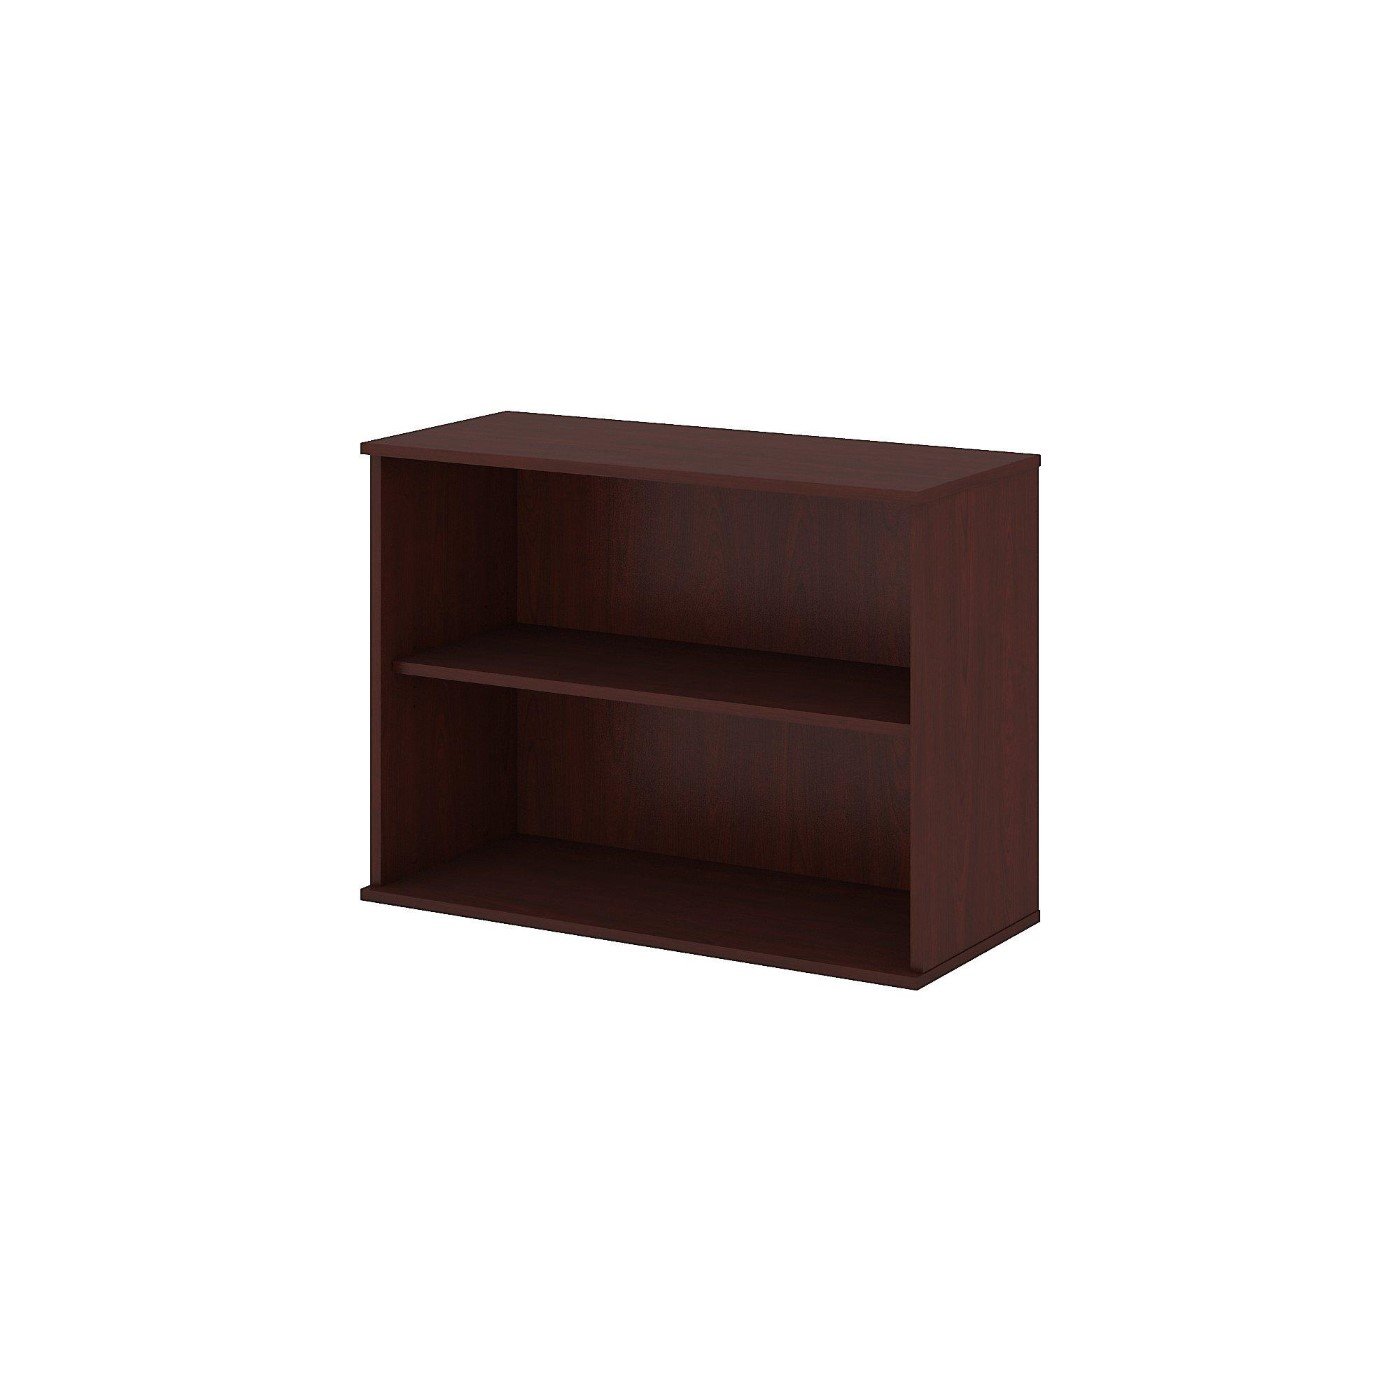 Font Colorc60bBUSH BUSINESS FURNITURE 30H 2 SHELF